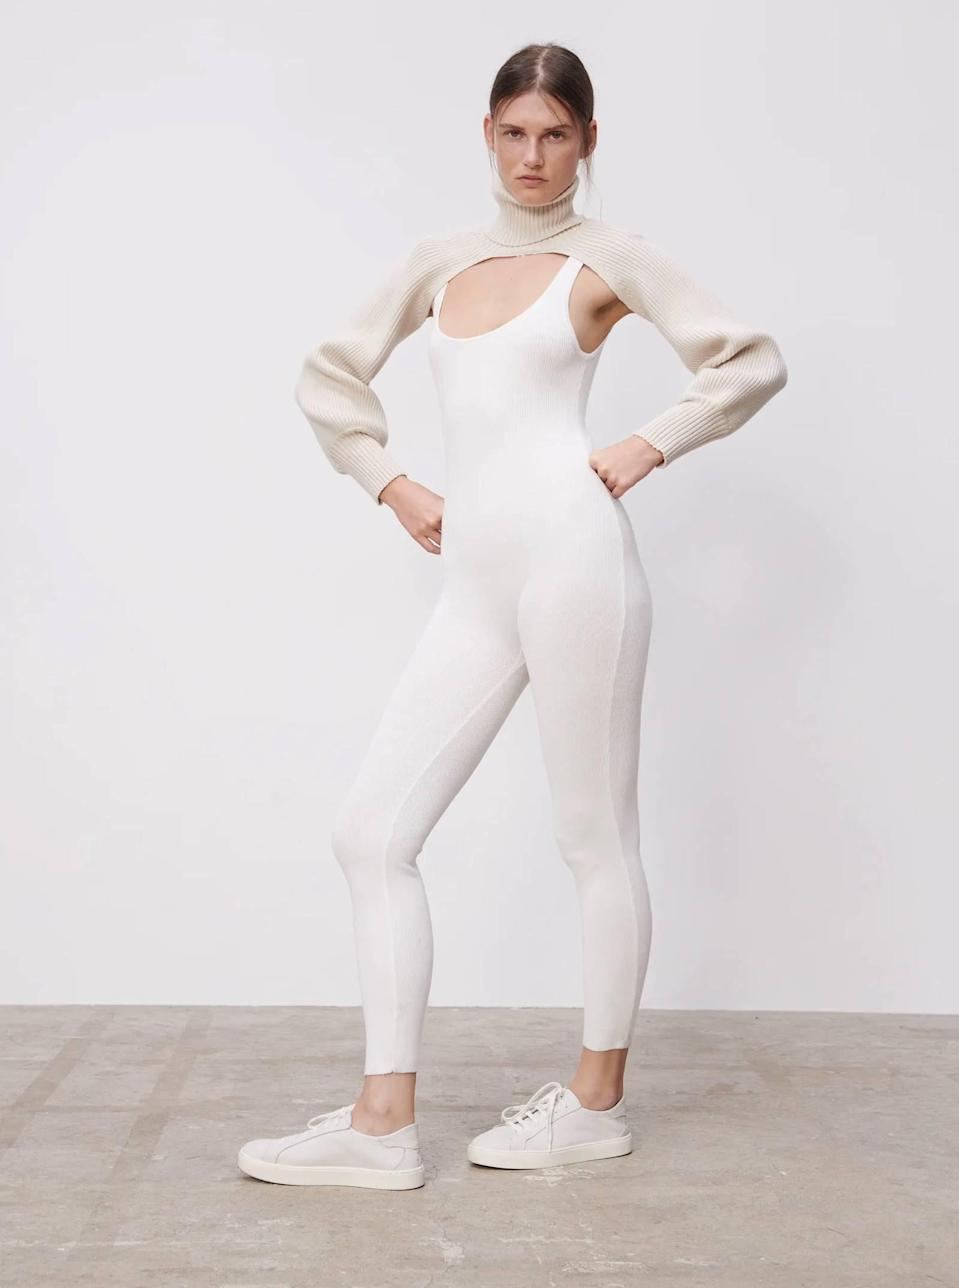 """Zara is always serving seasonal inspiration—and this combo is pure genius. <a href=""""https://www.glamour.com/gallery/best-unitards?mbid=synd_yahoo_rss"""" rel=""""nofollow noopener"""" target=""""_blank"""" data-ylk=""""slk:Unitards"""" class=""""link rapid-noclick-resp"""">Unitards</a> and a bolero <em>turtleneck</em>? Yes and yes. $30, Zara. <a href=""""https://www.zara.com/us/en/turtleneck-sleeve-scarf-p05536146.html"""" rel=""""nofollow noopener"""" target=""""_blank"""" data-ylk=""""slk:Get it now!"""" class=""""link rapid-noclick-resp"""">Get it now!</a>"""